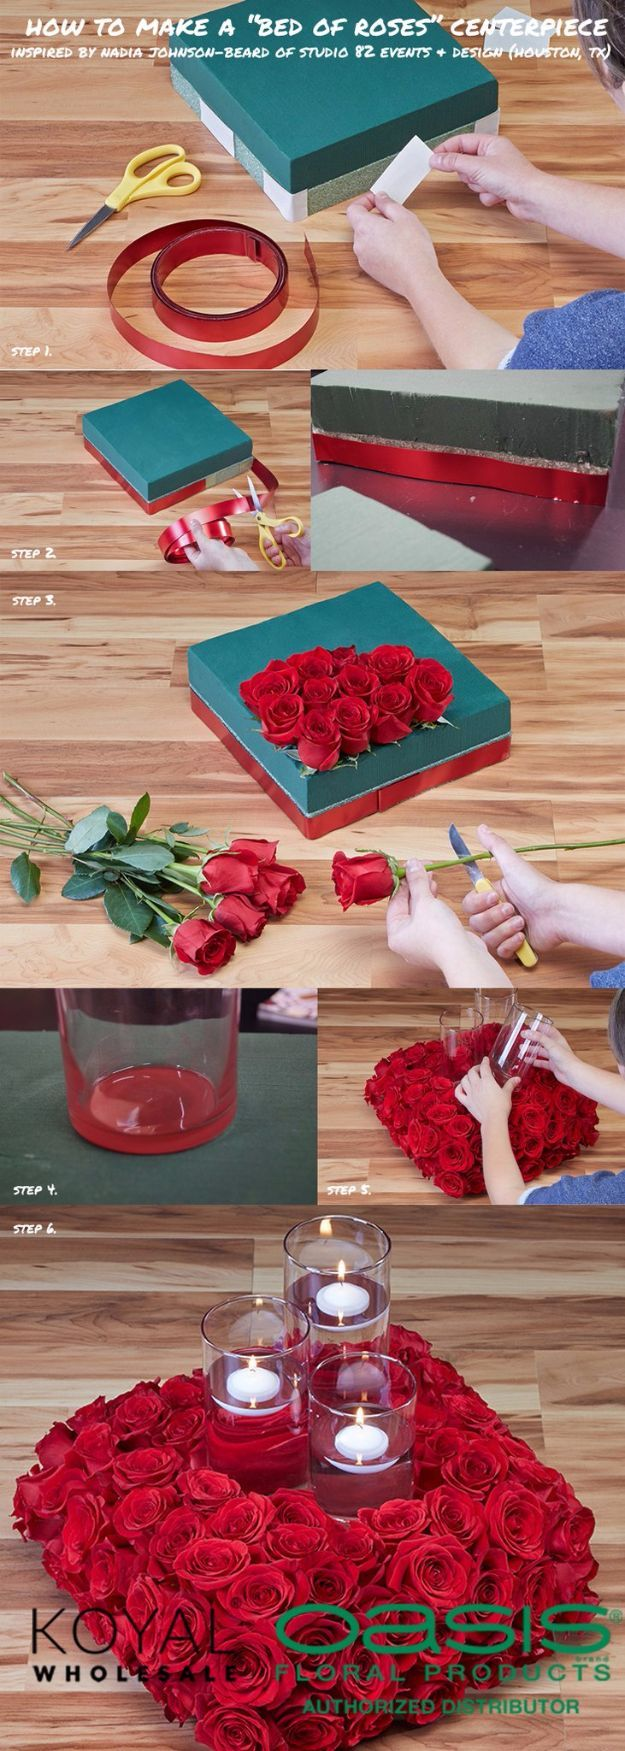 DIY Wedding Centerpieces - DIY Bed Of Roses Floating Candle Centerpiece - Do It Yourself Ideas for Brides and Best Centerpiece Ideas for Weddings - Step by Step Tutorials for Making Mason Jars, Rustic Crafts, Flowers, Modern Decor, Vintage and Cheap Ideas for Couples on A Budget Outdoor and Indoor Weddings http://diyjoy.com/diy-wedding-centerpieces